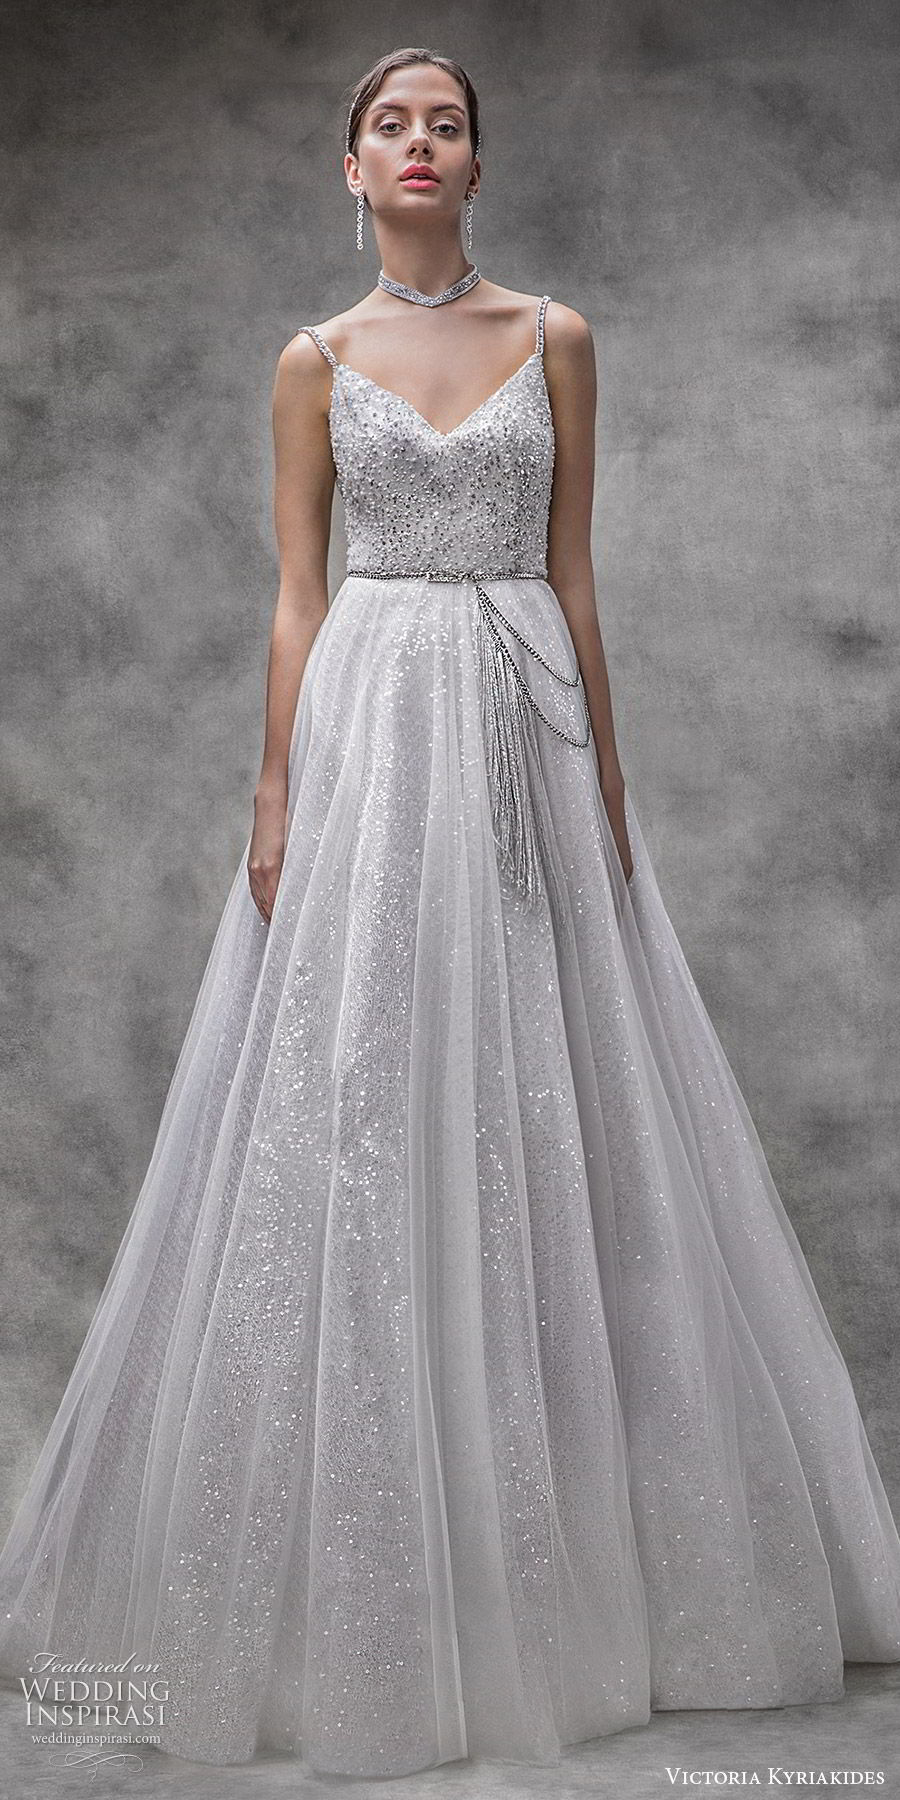 victoria kyriakides spring 2020 bridal sleeveless beaded straps v neck fully embellished a line ball gown wedding dress (11) glitzy romantic glam modern metallic mv